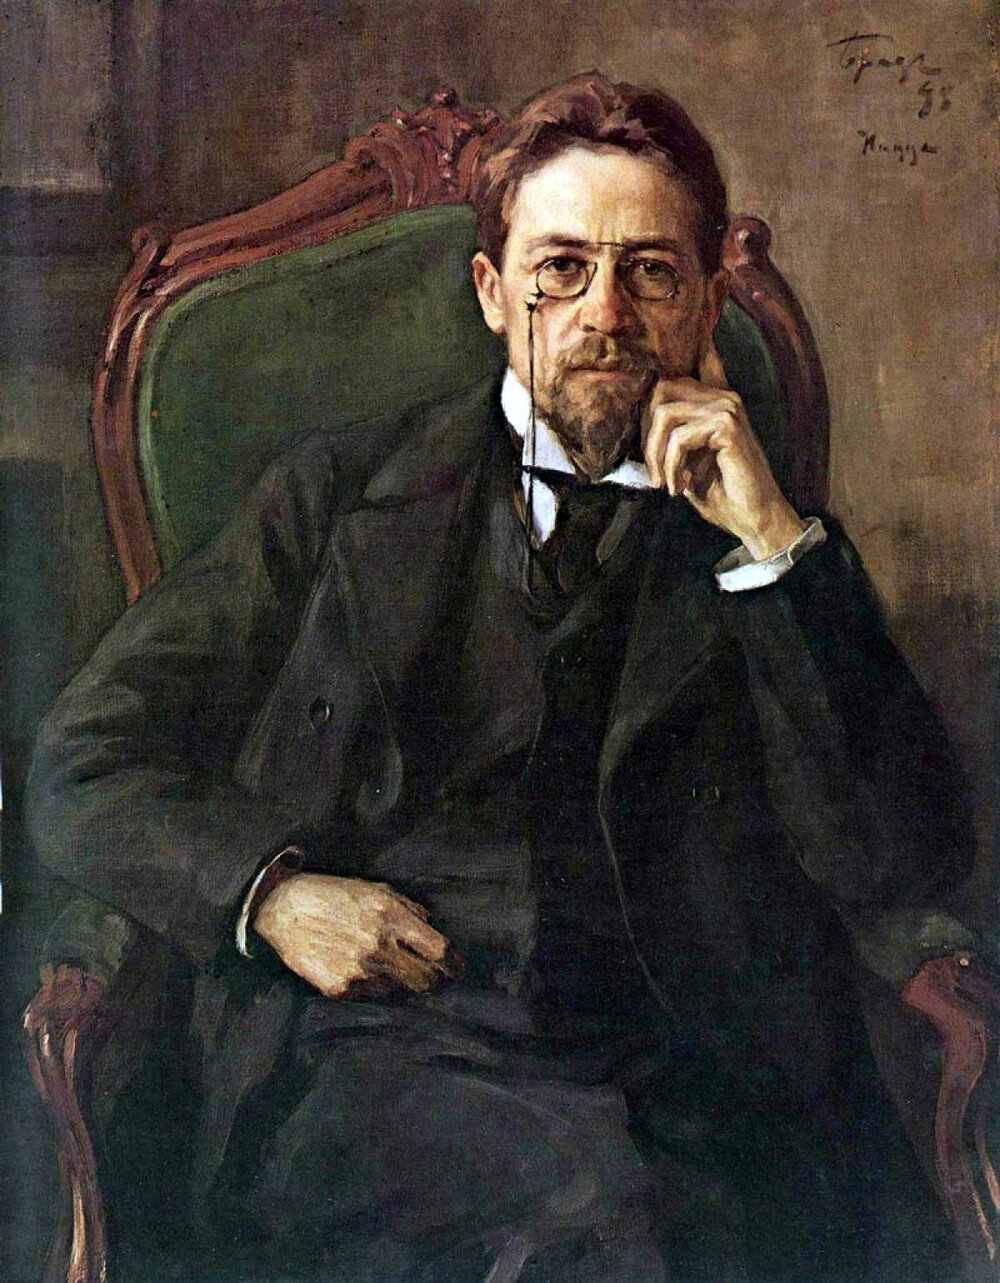 A portrait of Anton Chekhov (1860–1904), painted by Osip Braz in 1898.